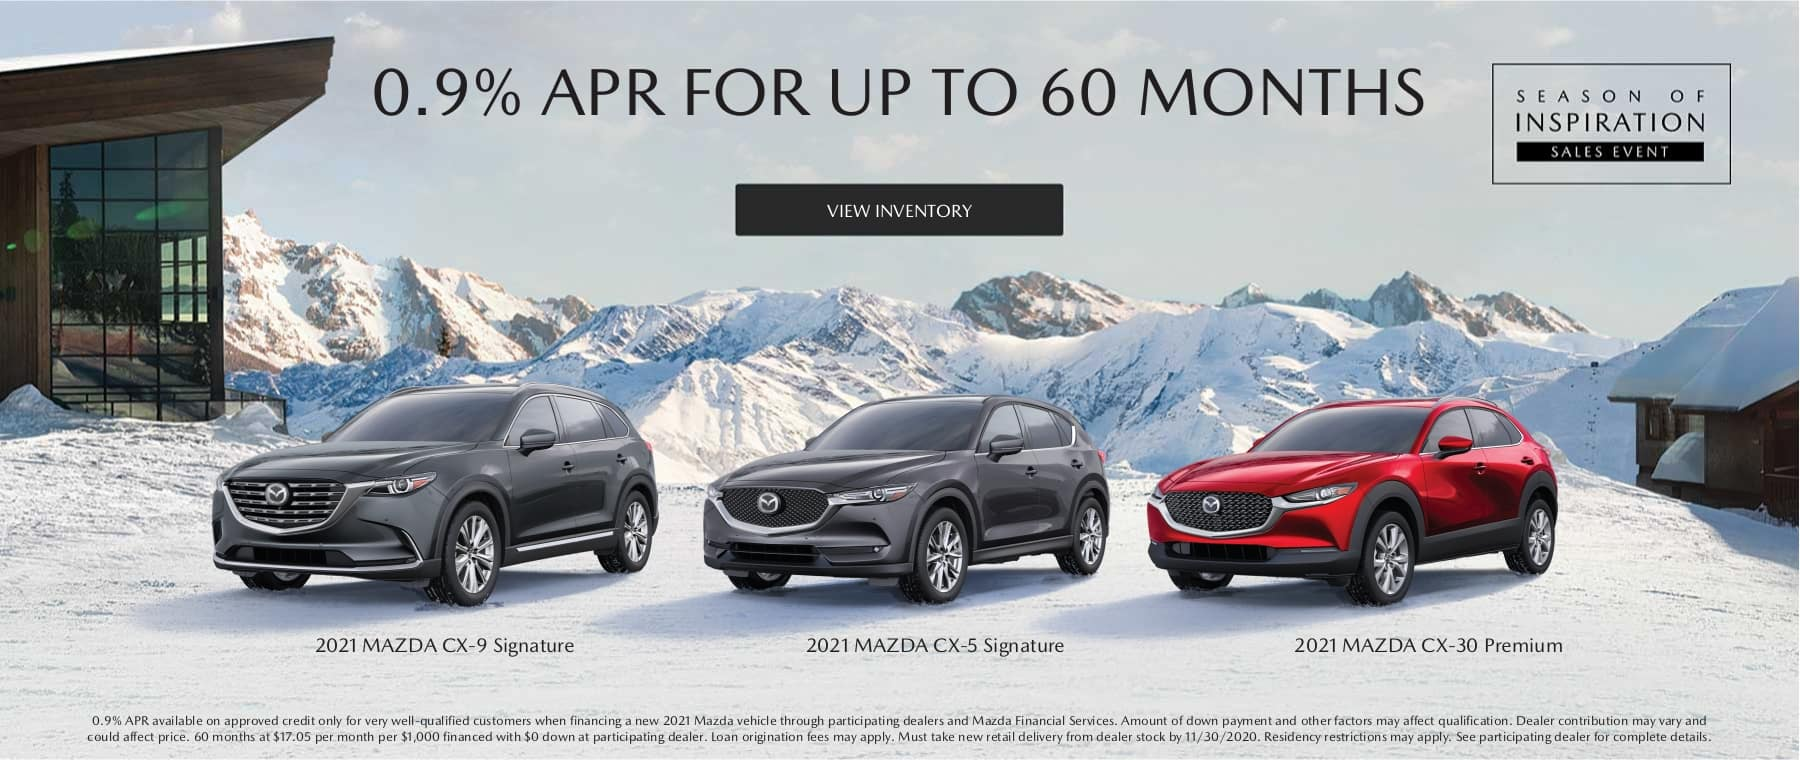 0.9% APR For up to 60 Months on Select Mazda Vehicles at Smail Mazda